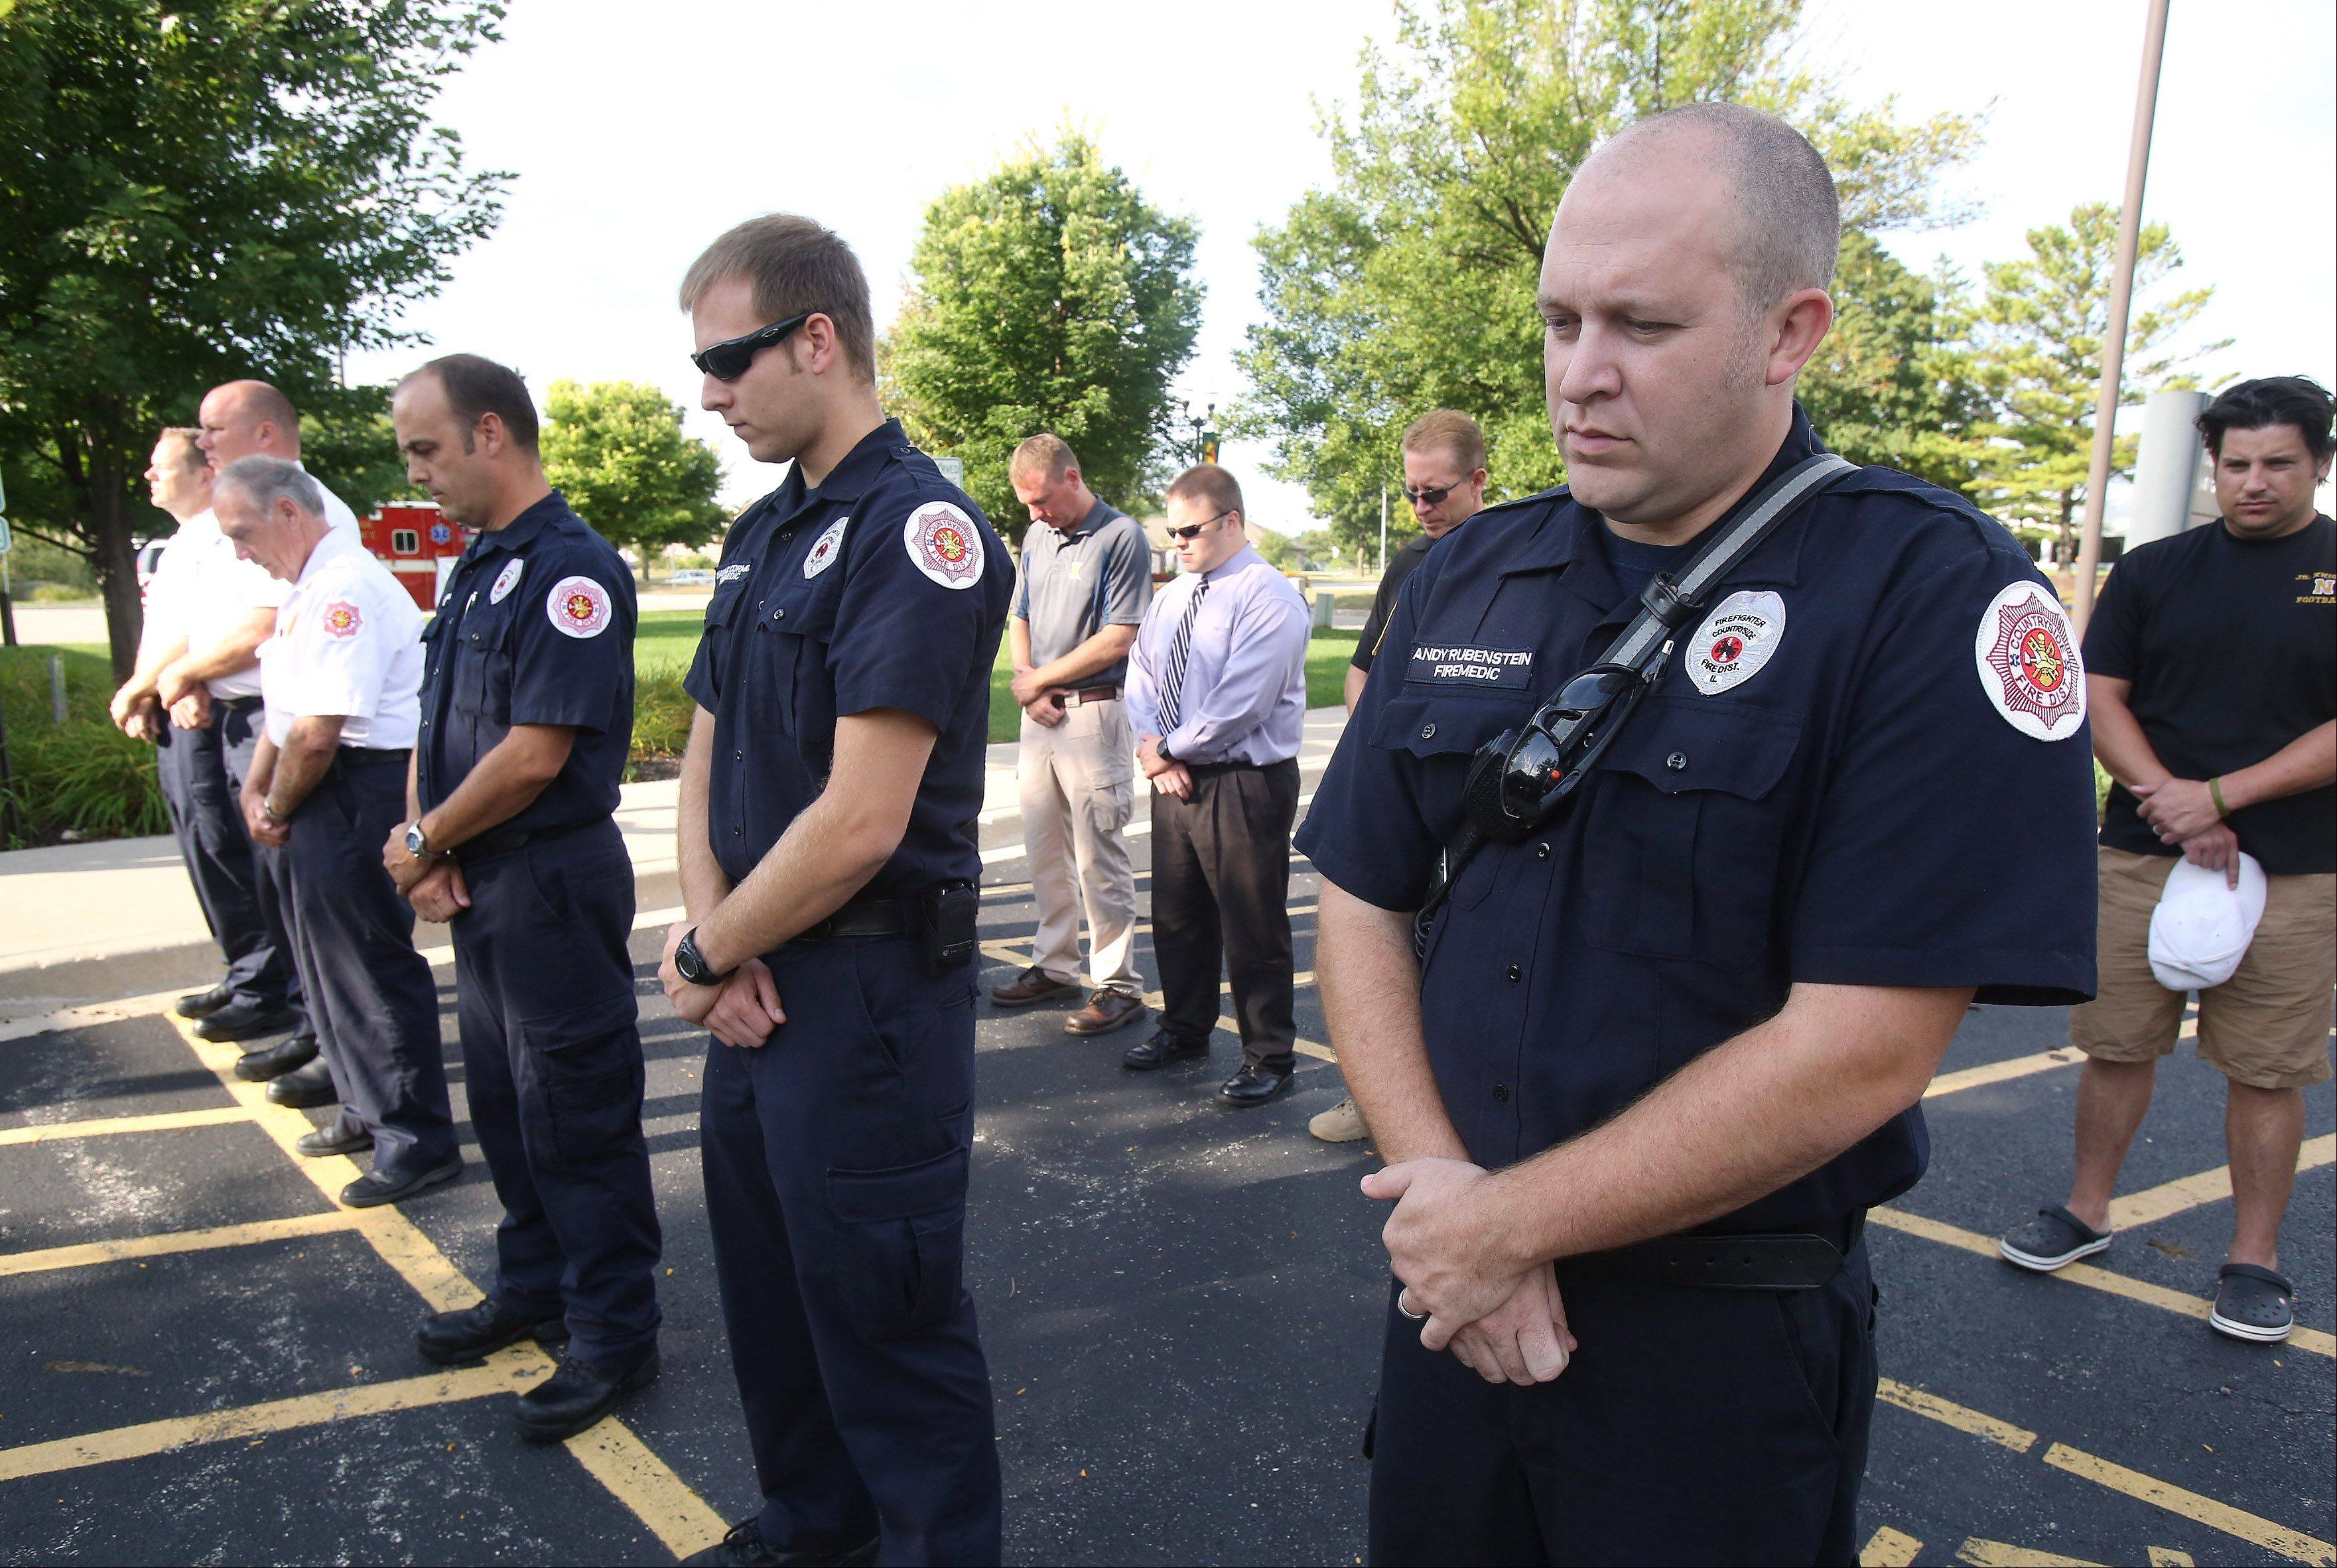 Firefighter/paramedics Andy Rubenstein, right, Chad McCormick and members of the Countryside Fire Protection District and the Vernon Hills Police Department hold a moment of silence in remembrance of Sept. 11 Wednesday at the Deerpath fire station.